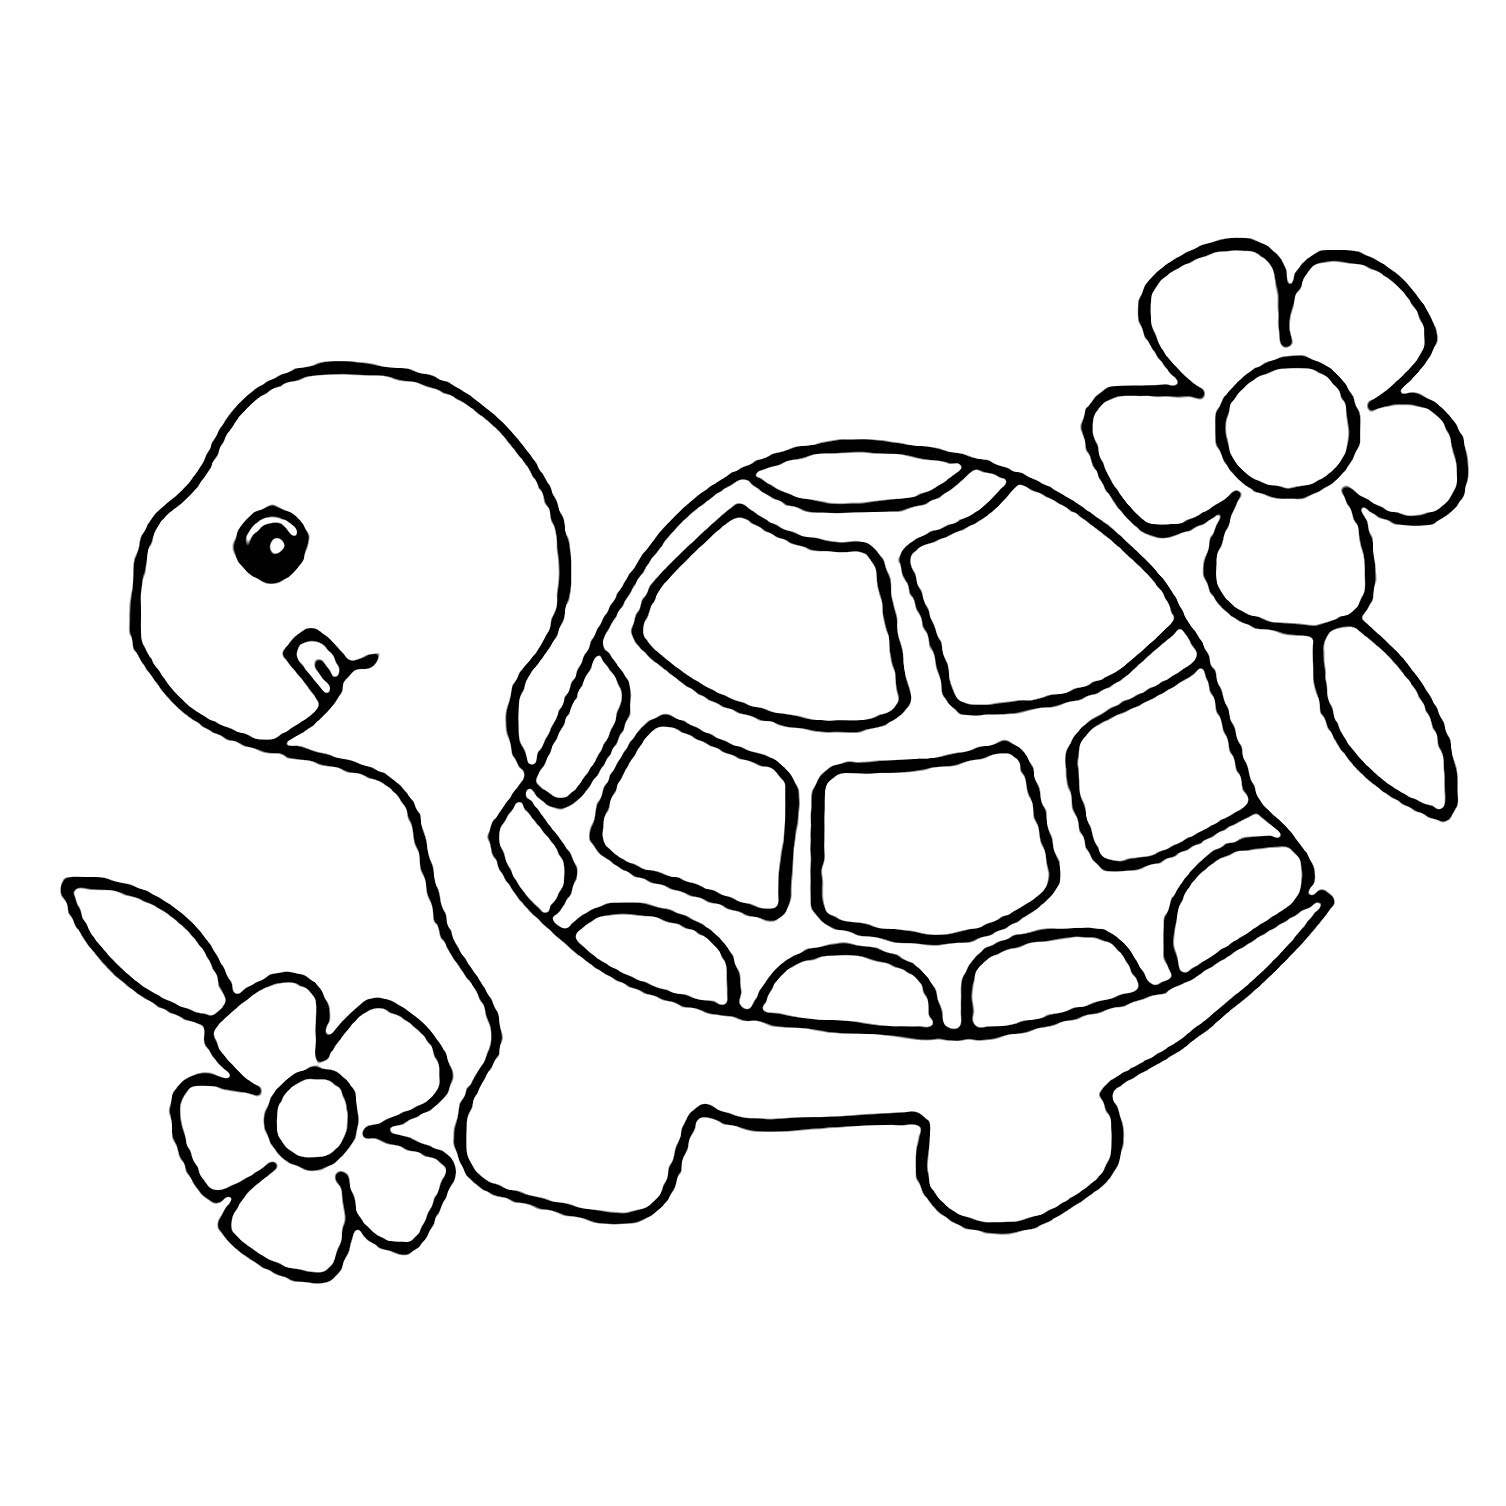 tortoise coloring page coloring pages turtles free printable coloring pages page coloring tortoise